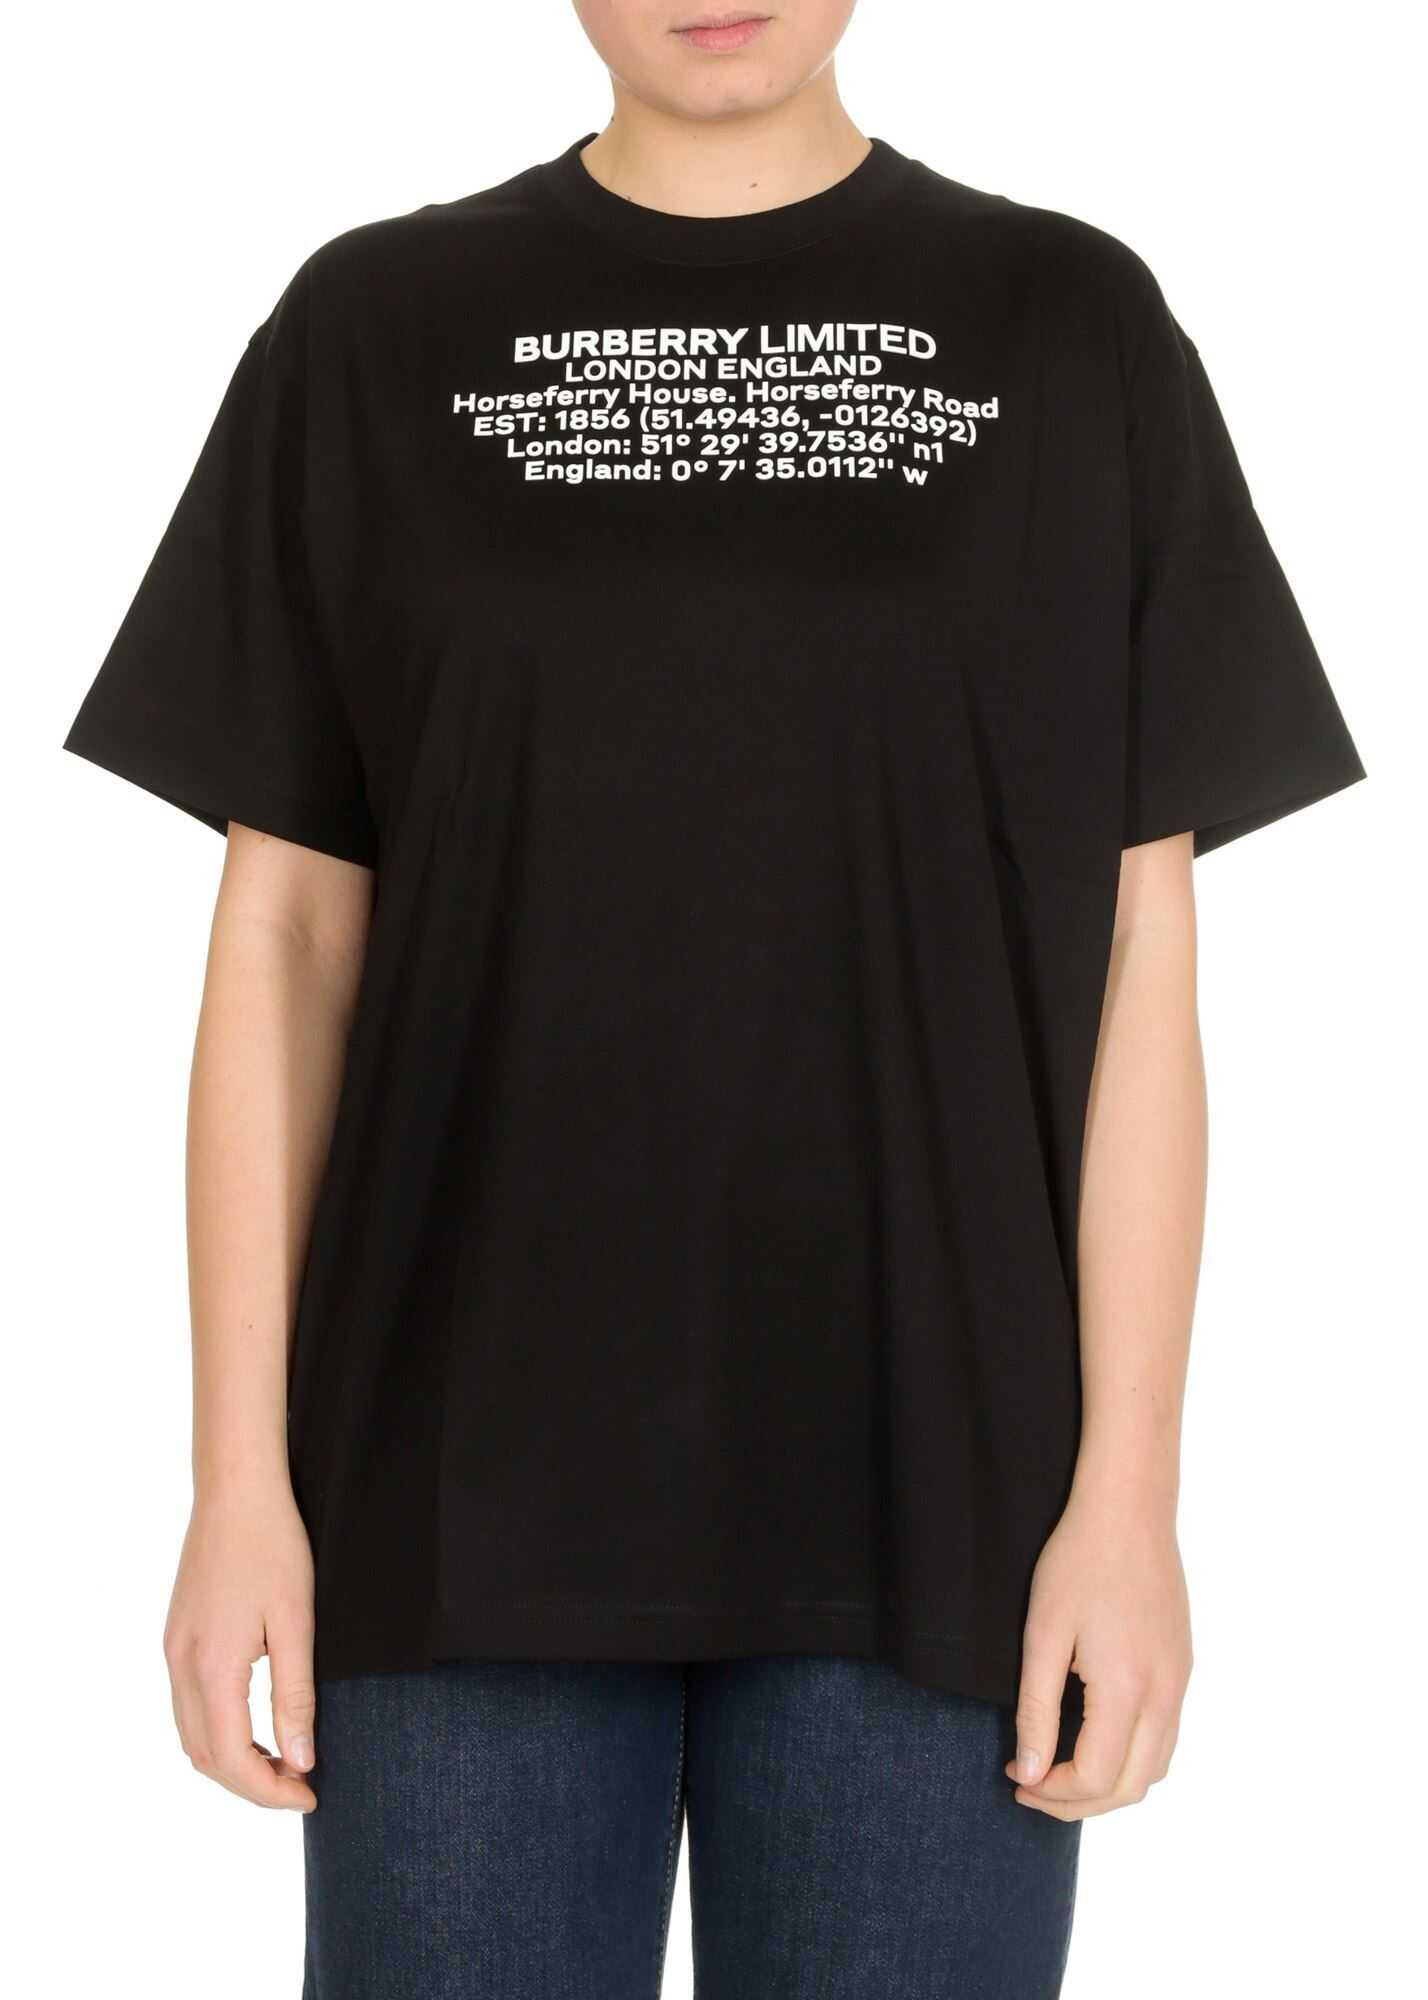 Burberry T-Shirt In Black With Geographic Coordinates Print Black